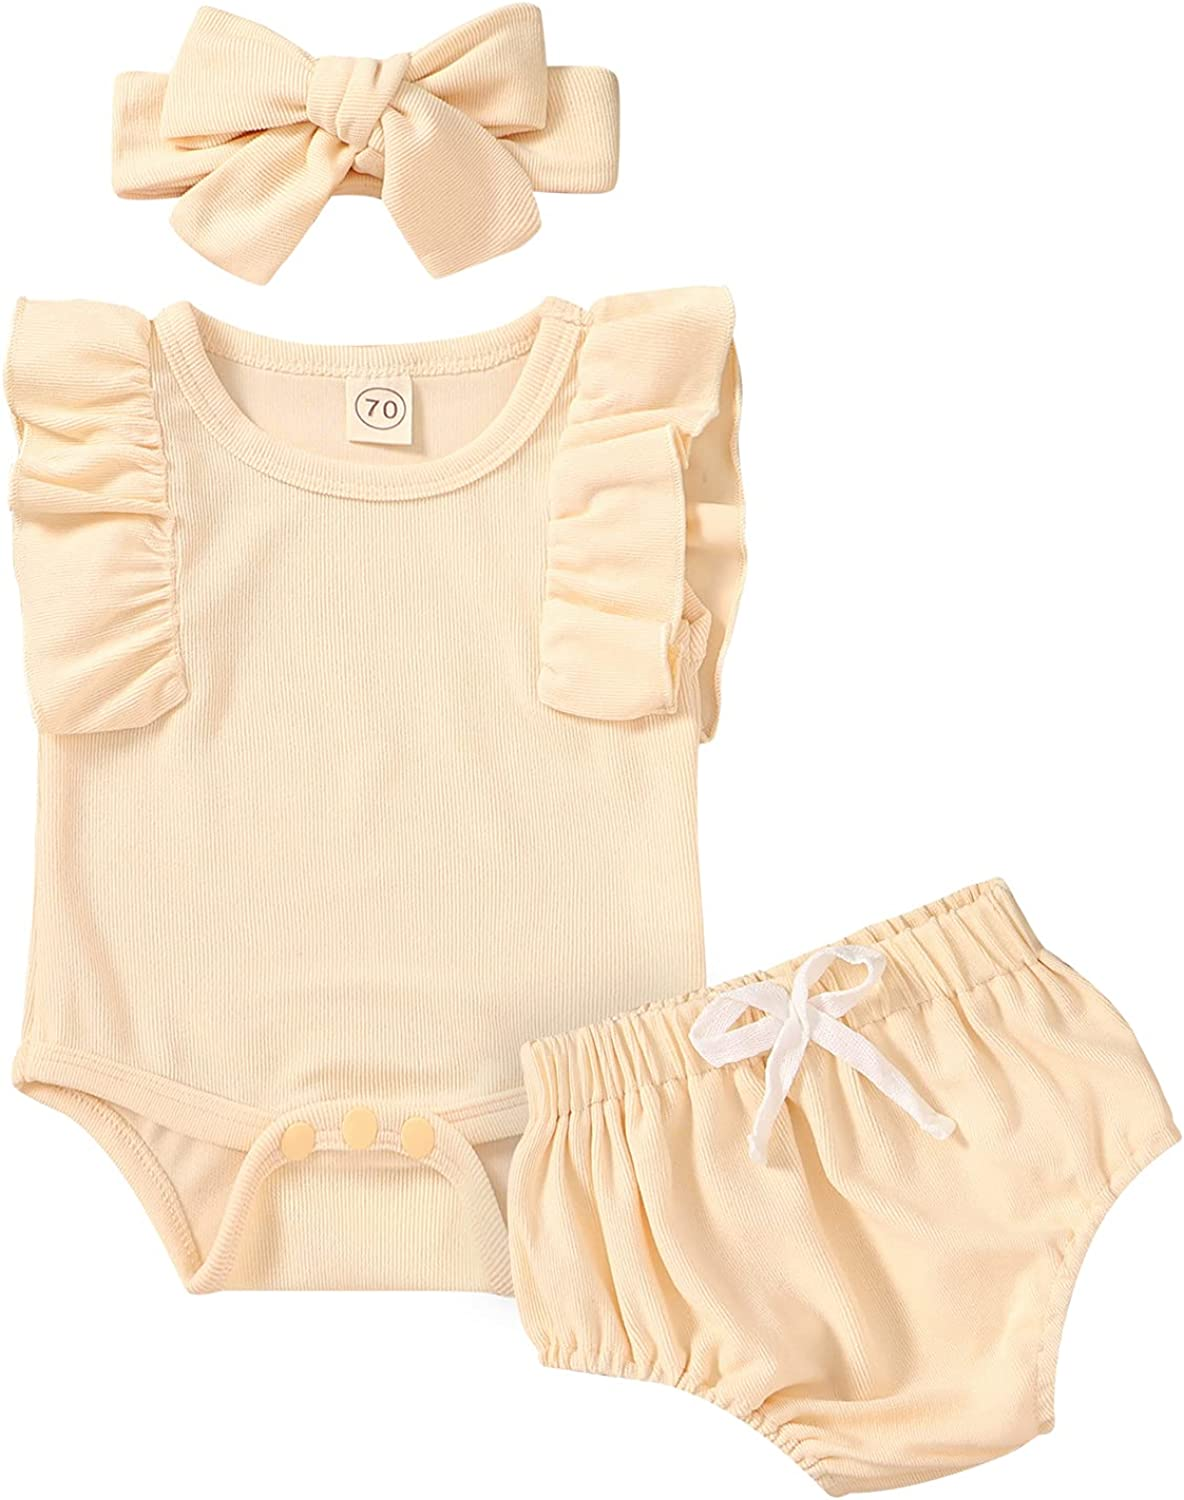 CBHAIBLYD Newborn Infant Baby Girl Clothes Romper Short Sets Solid Ruffle Summer Outfits 3Pcs Cute Baby Clothing Girls